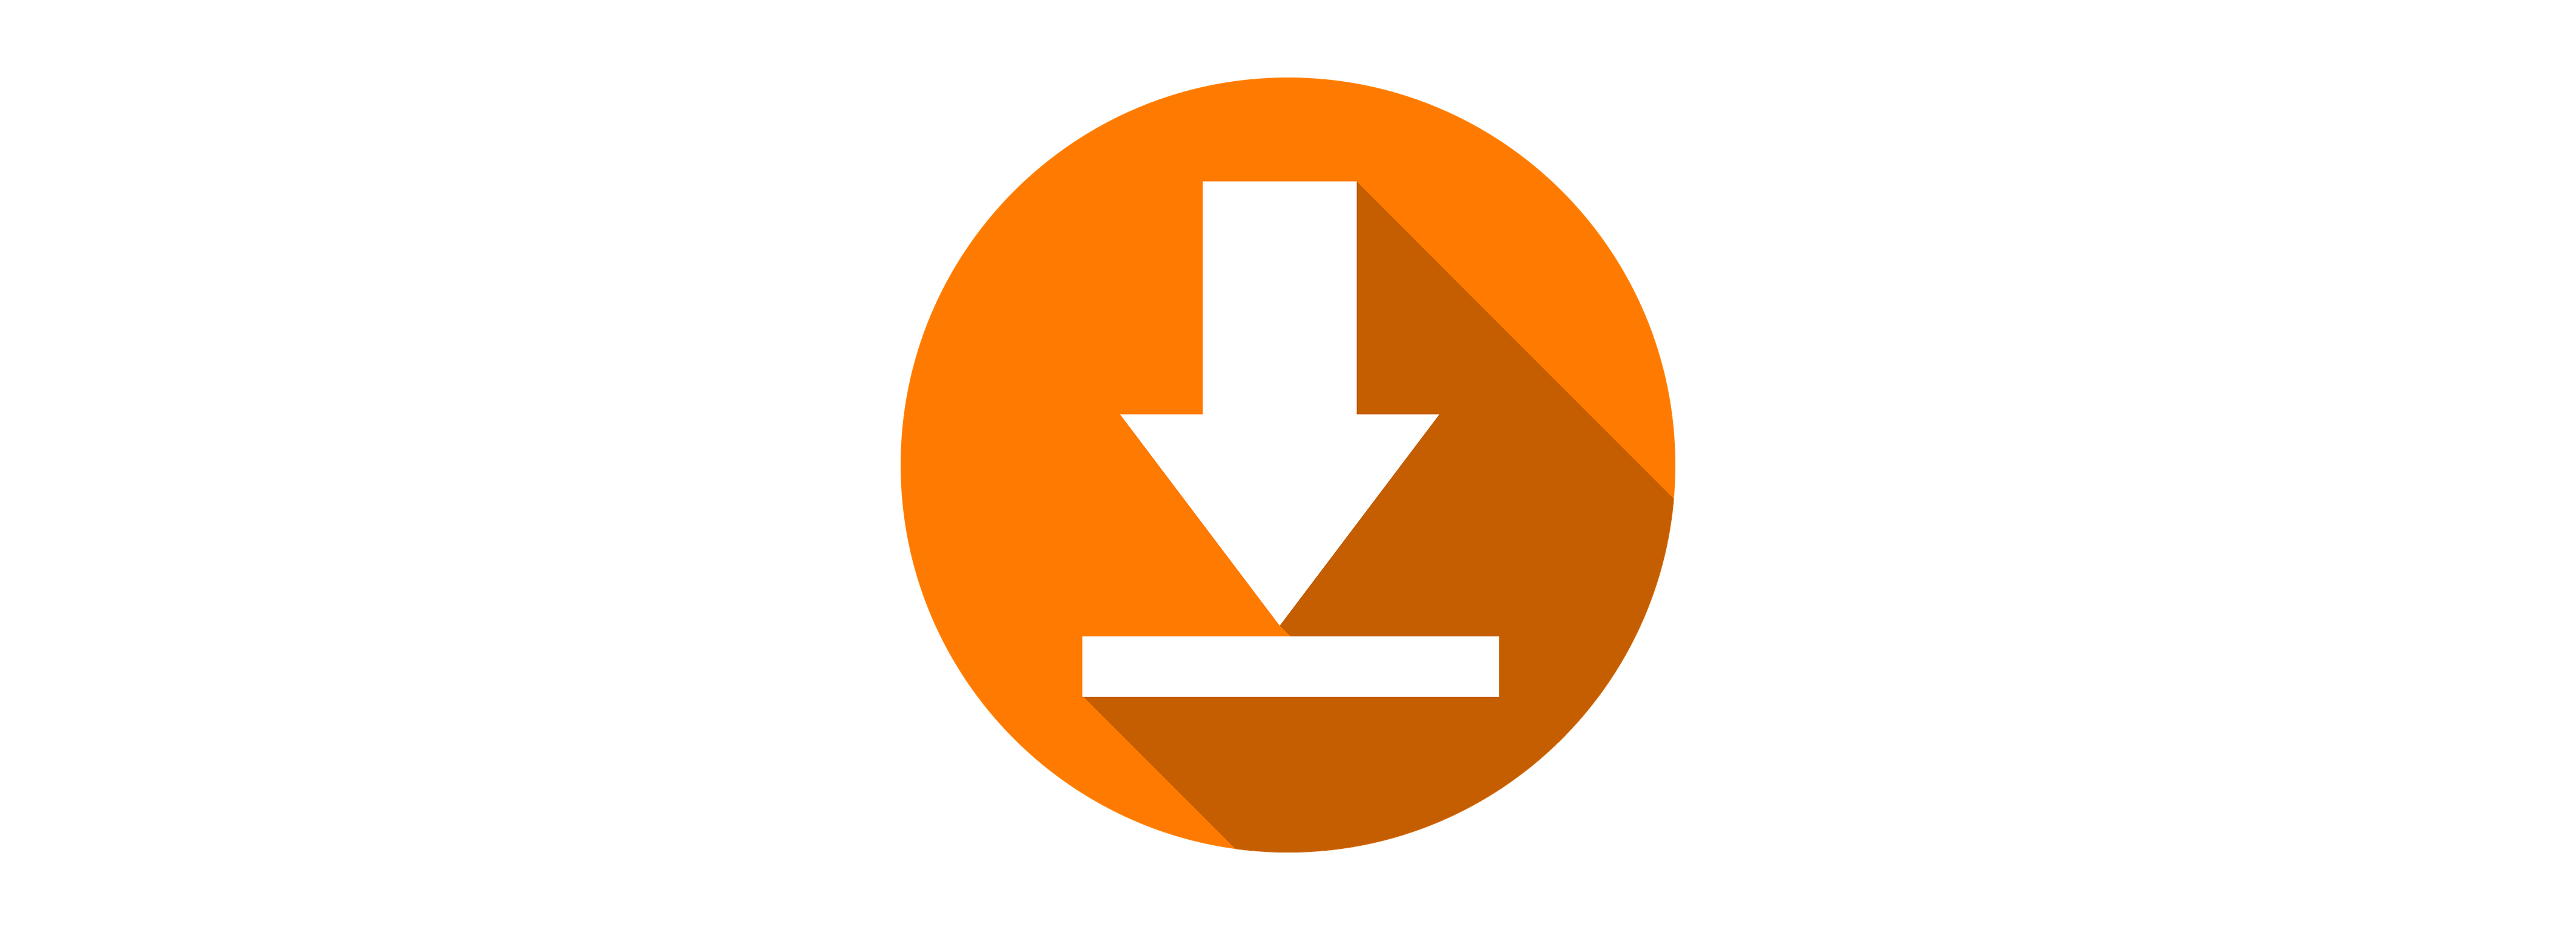 Download icon in orange circle